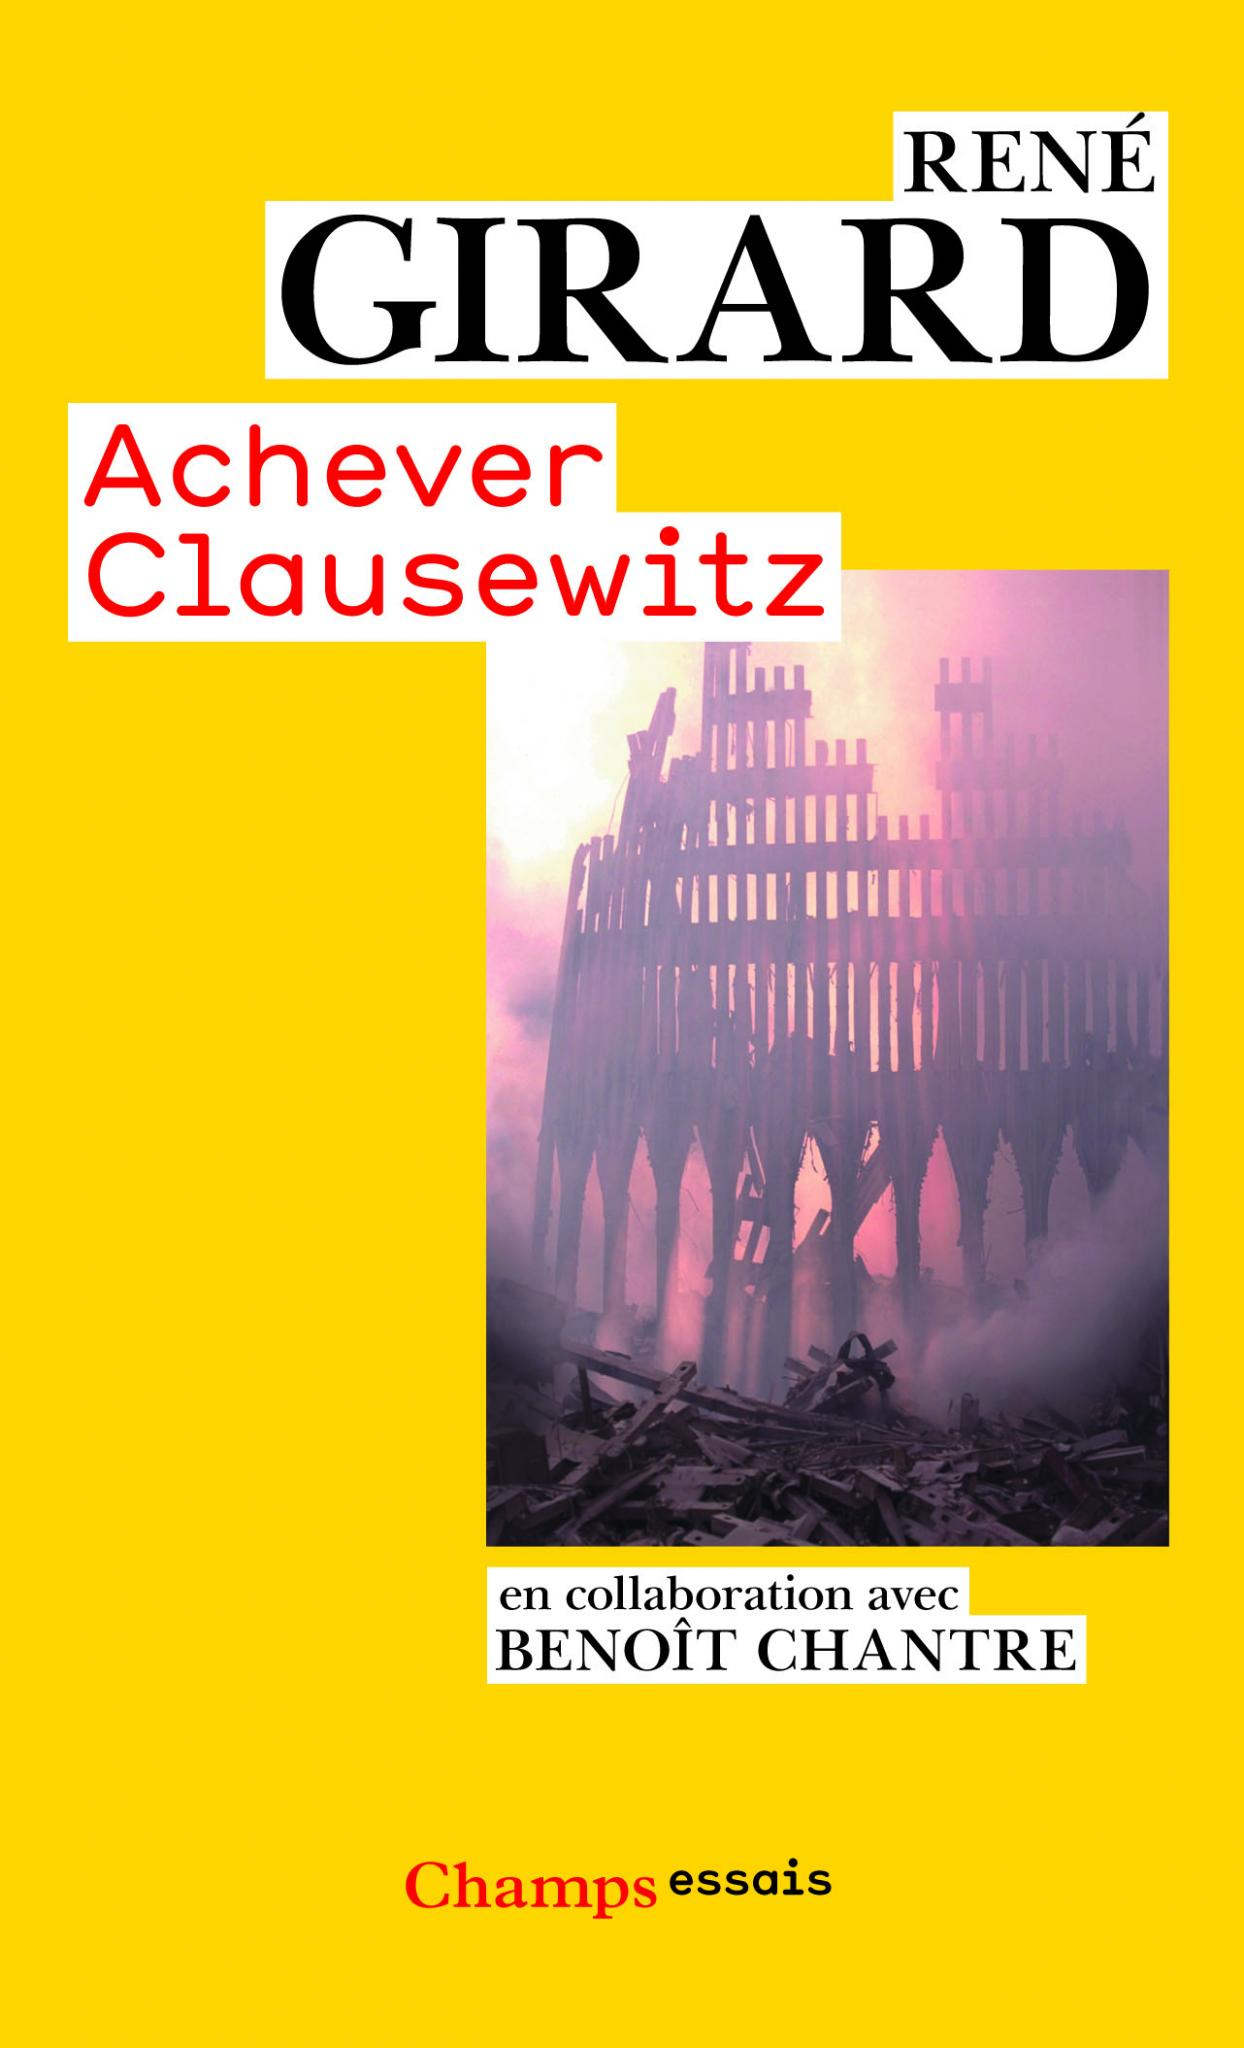 9782081226395_AcheverClausewitz_CouvHD_2011